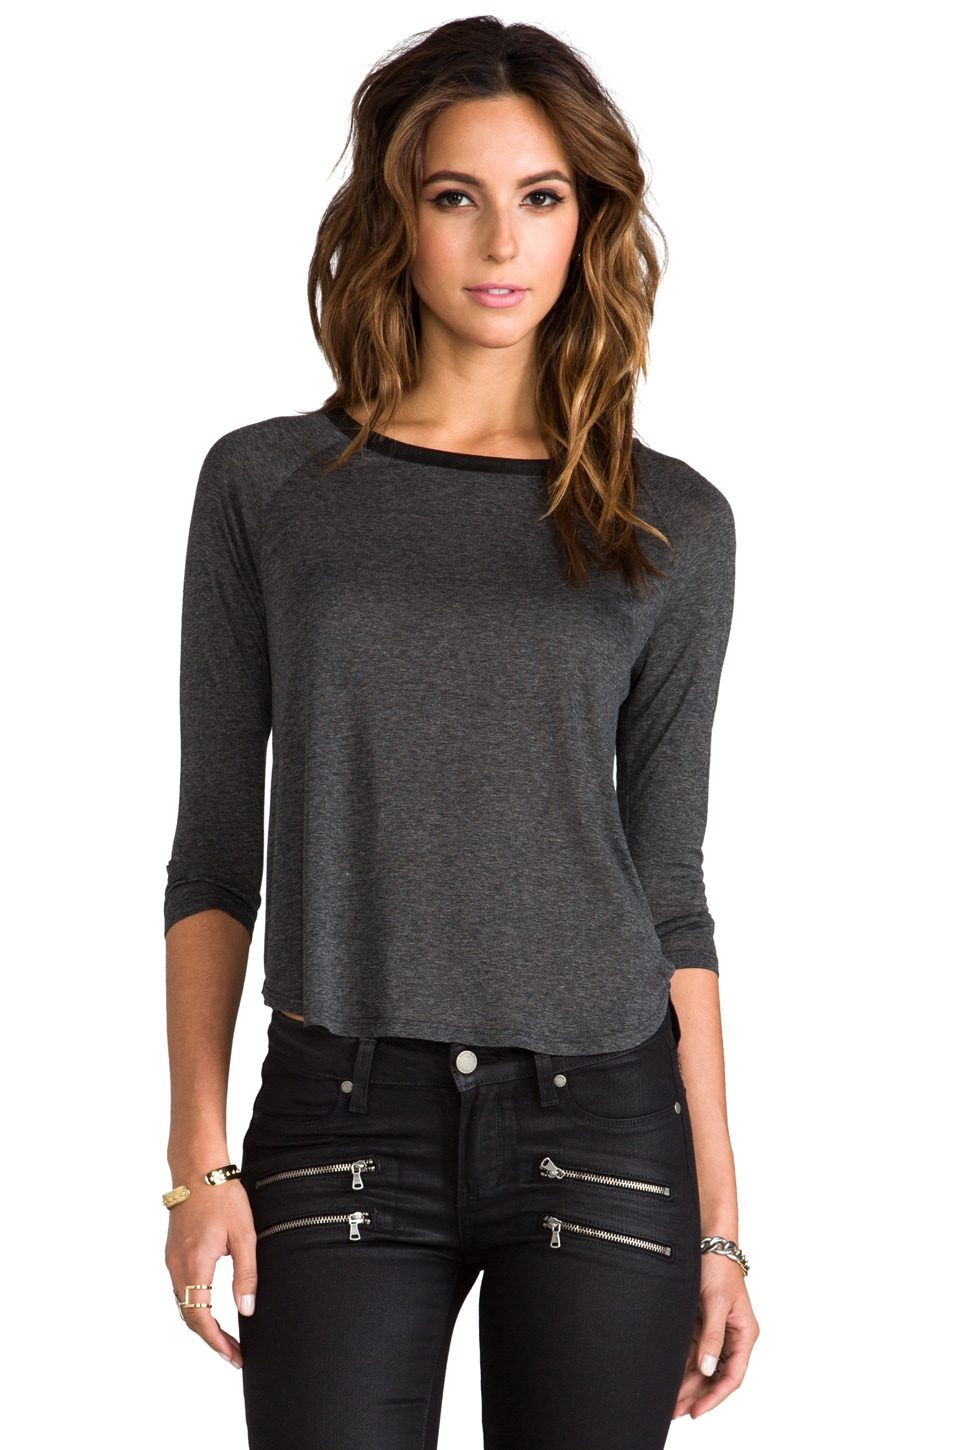 Enza Costa Rayon Jersey Zip Raglan in Anthracite